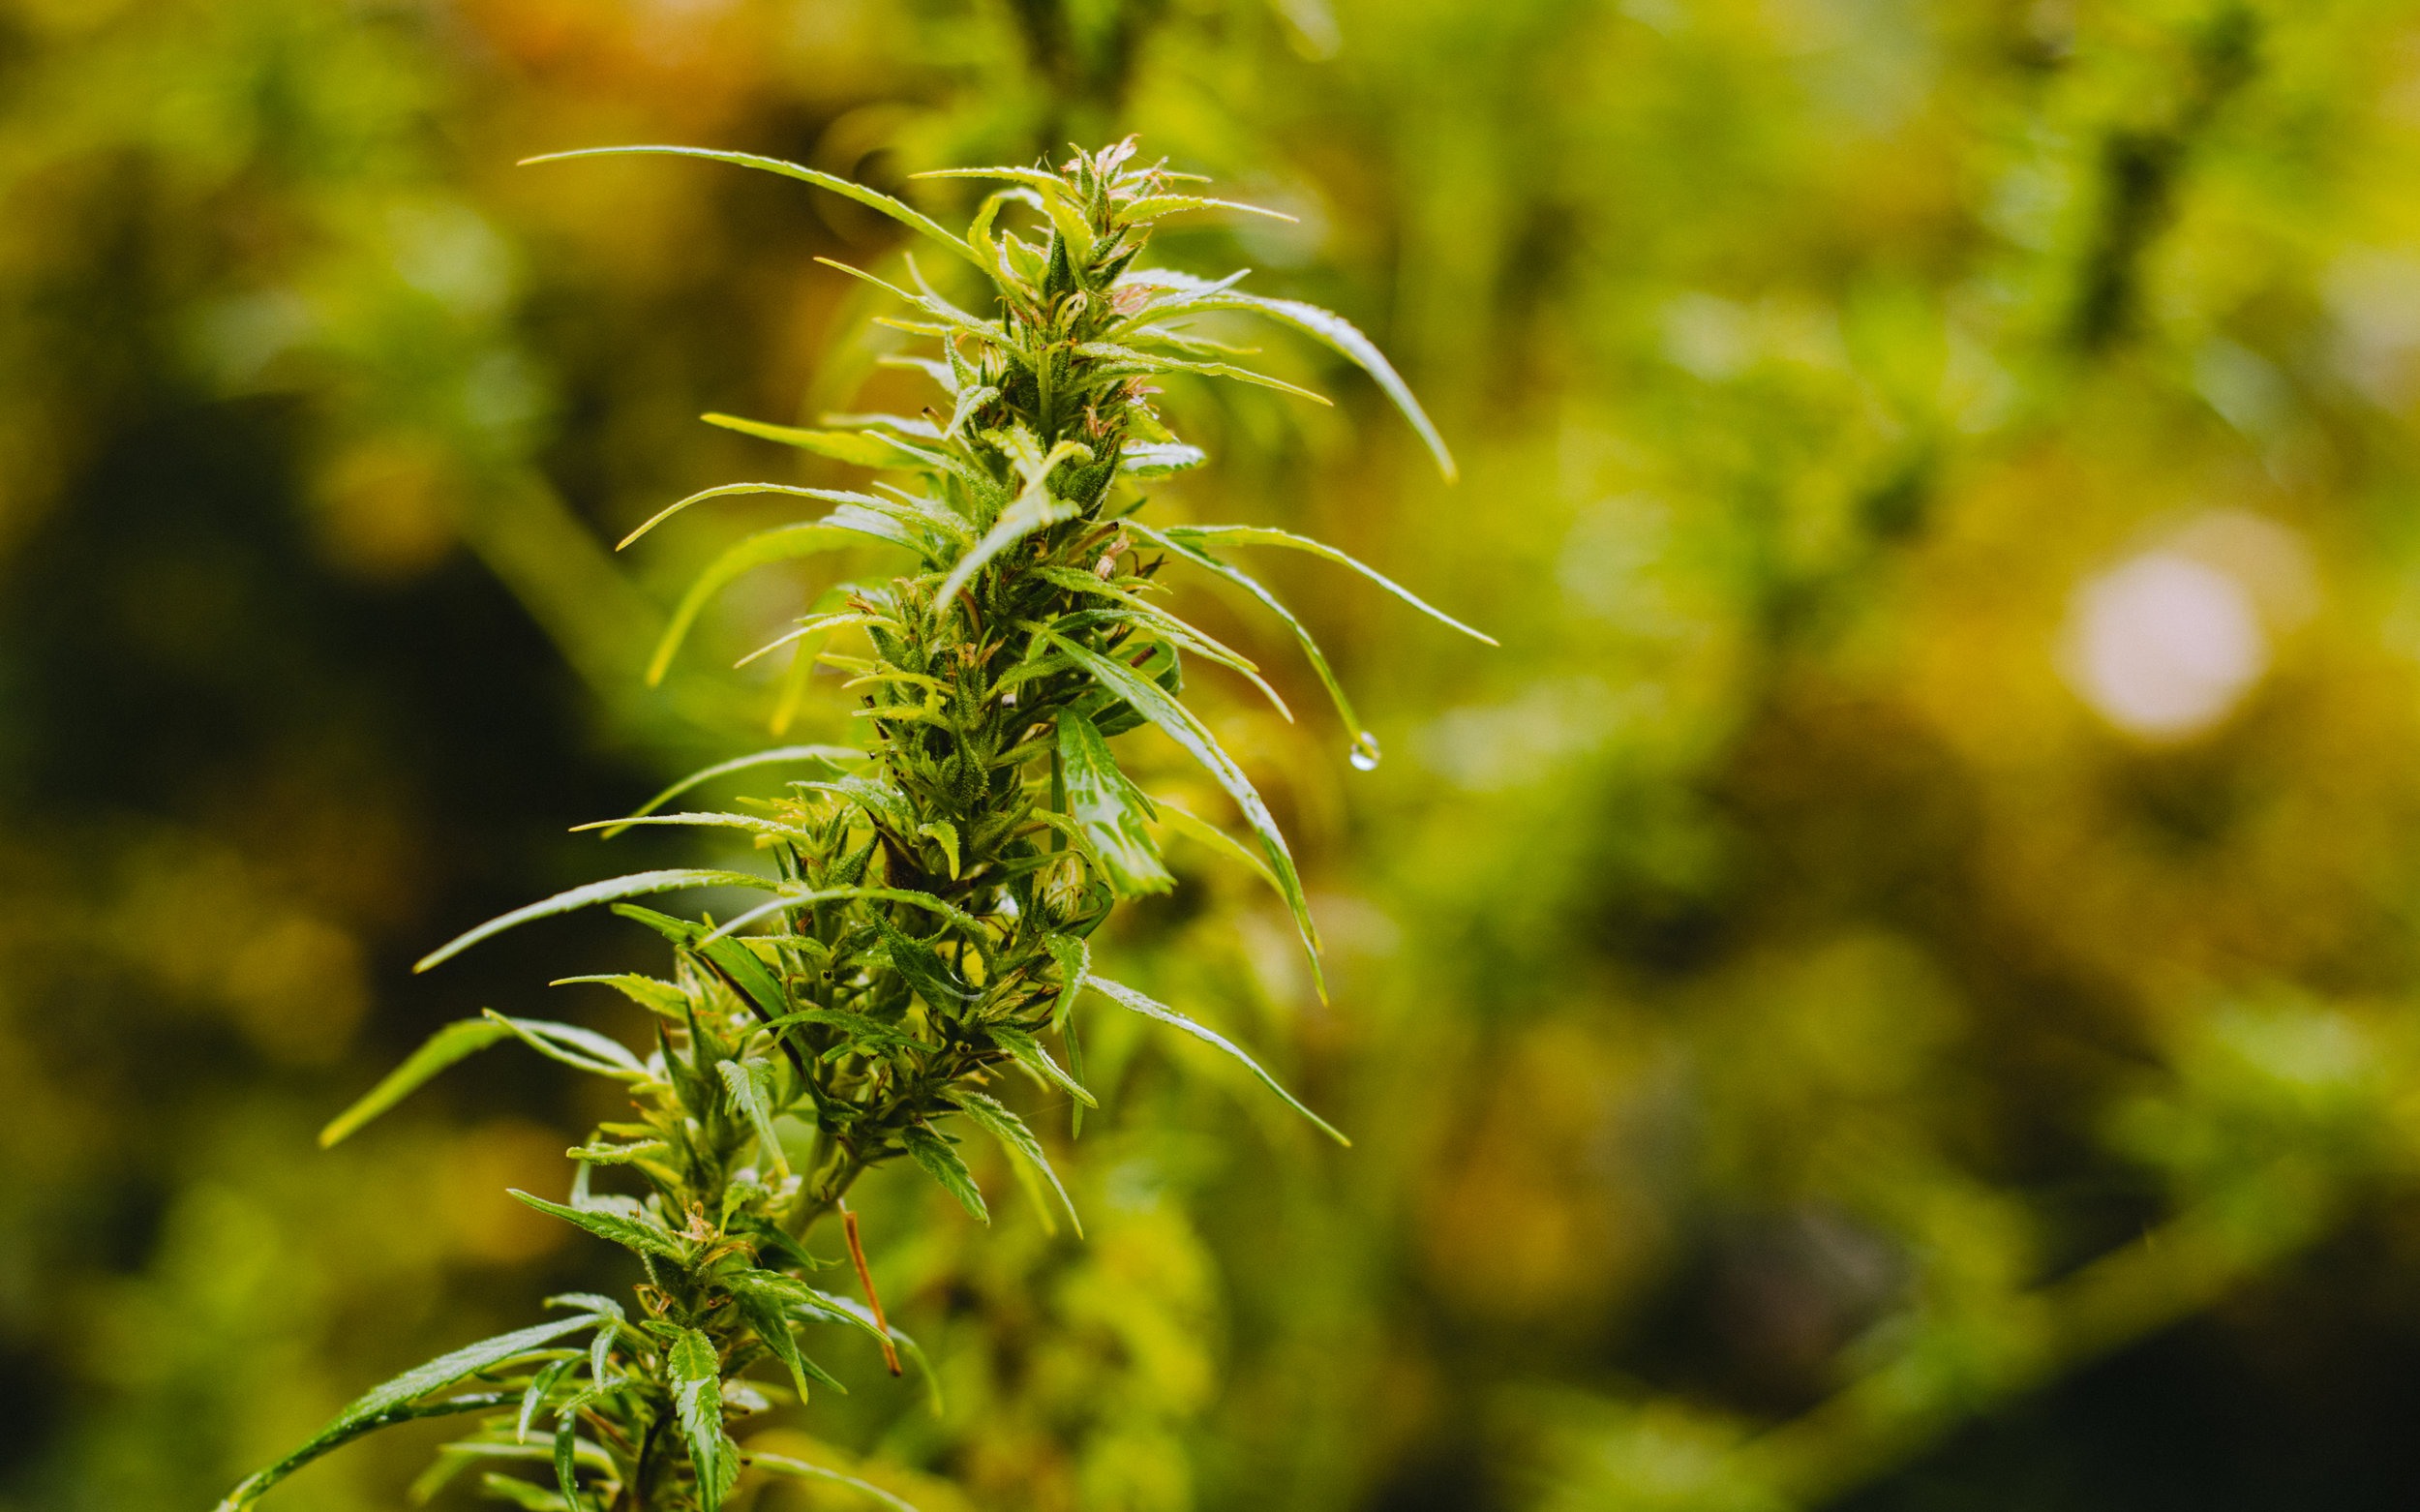 Sativa - These tall lanky plants are lighter green in color. Generally, these strains are good for motivation, creativity, and helping with depression. Sativa strains generally provide a more energetic high.